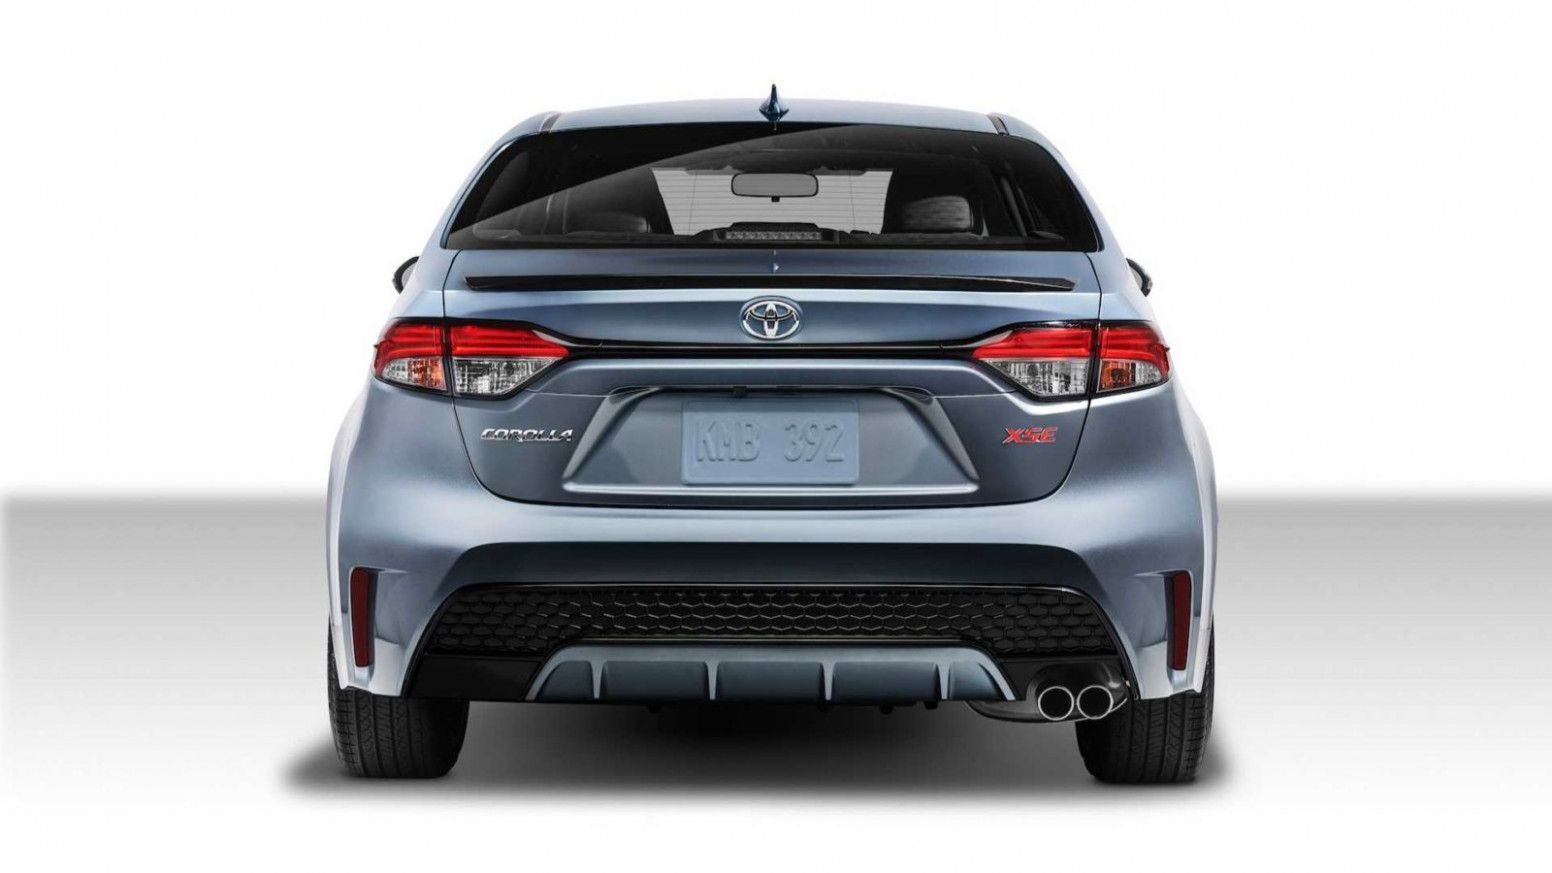 Toyota Gli 2021 Price In Pakistan Price And Review In 2020 Toyota Corolla Toyota Toyota Corolla Hatchback